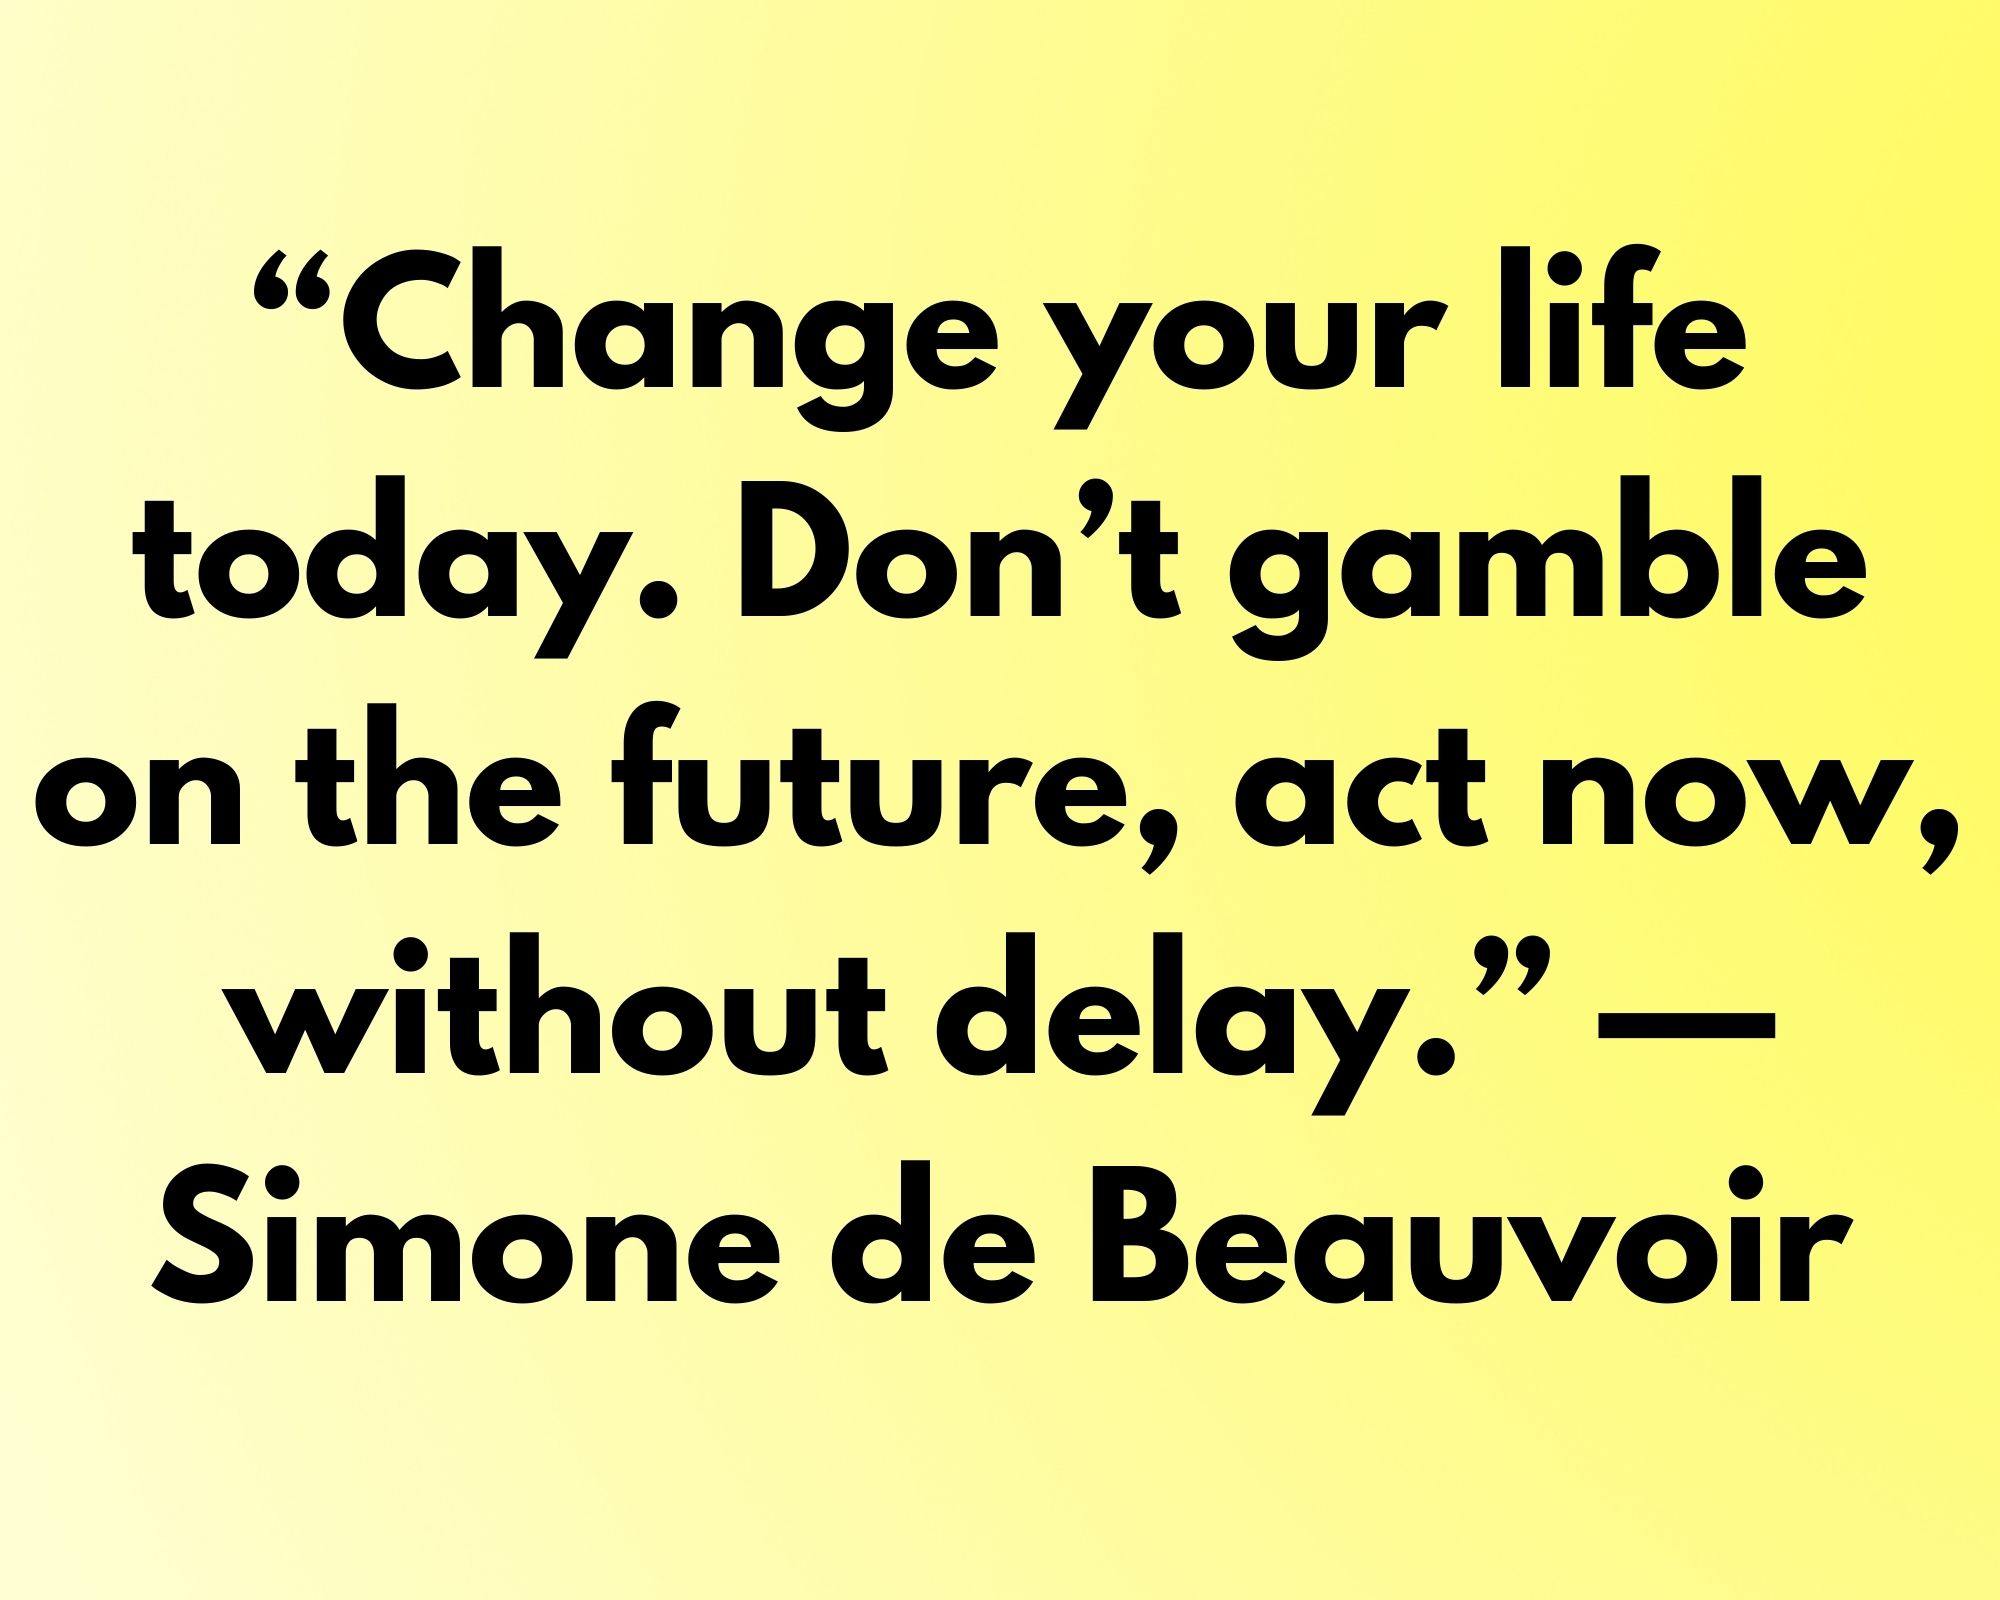 """Change your life today. Don't gamble on the future, act now, without delay."" —Simone de Beauvoir"